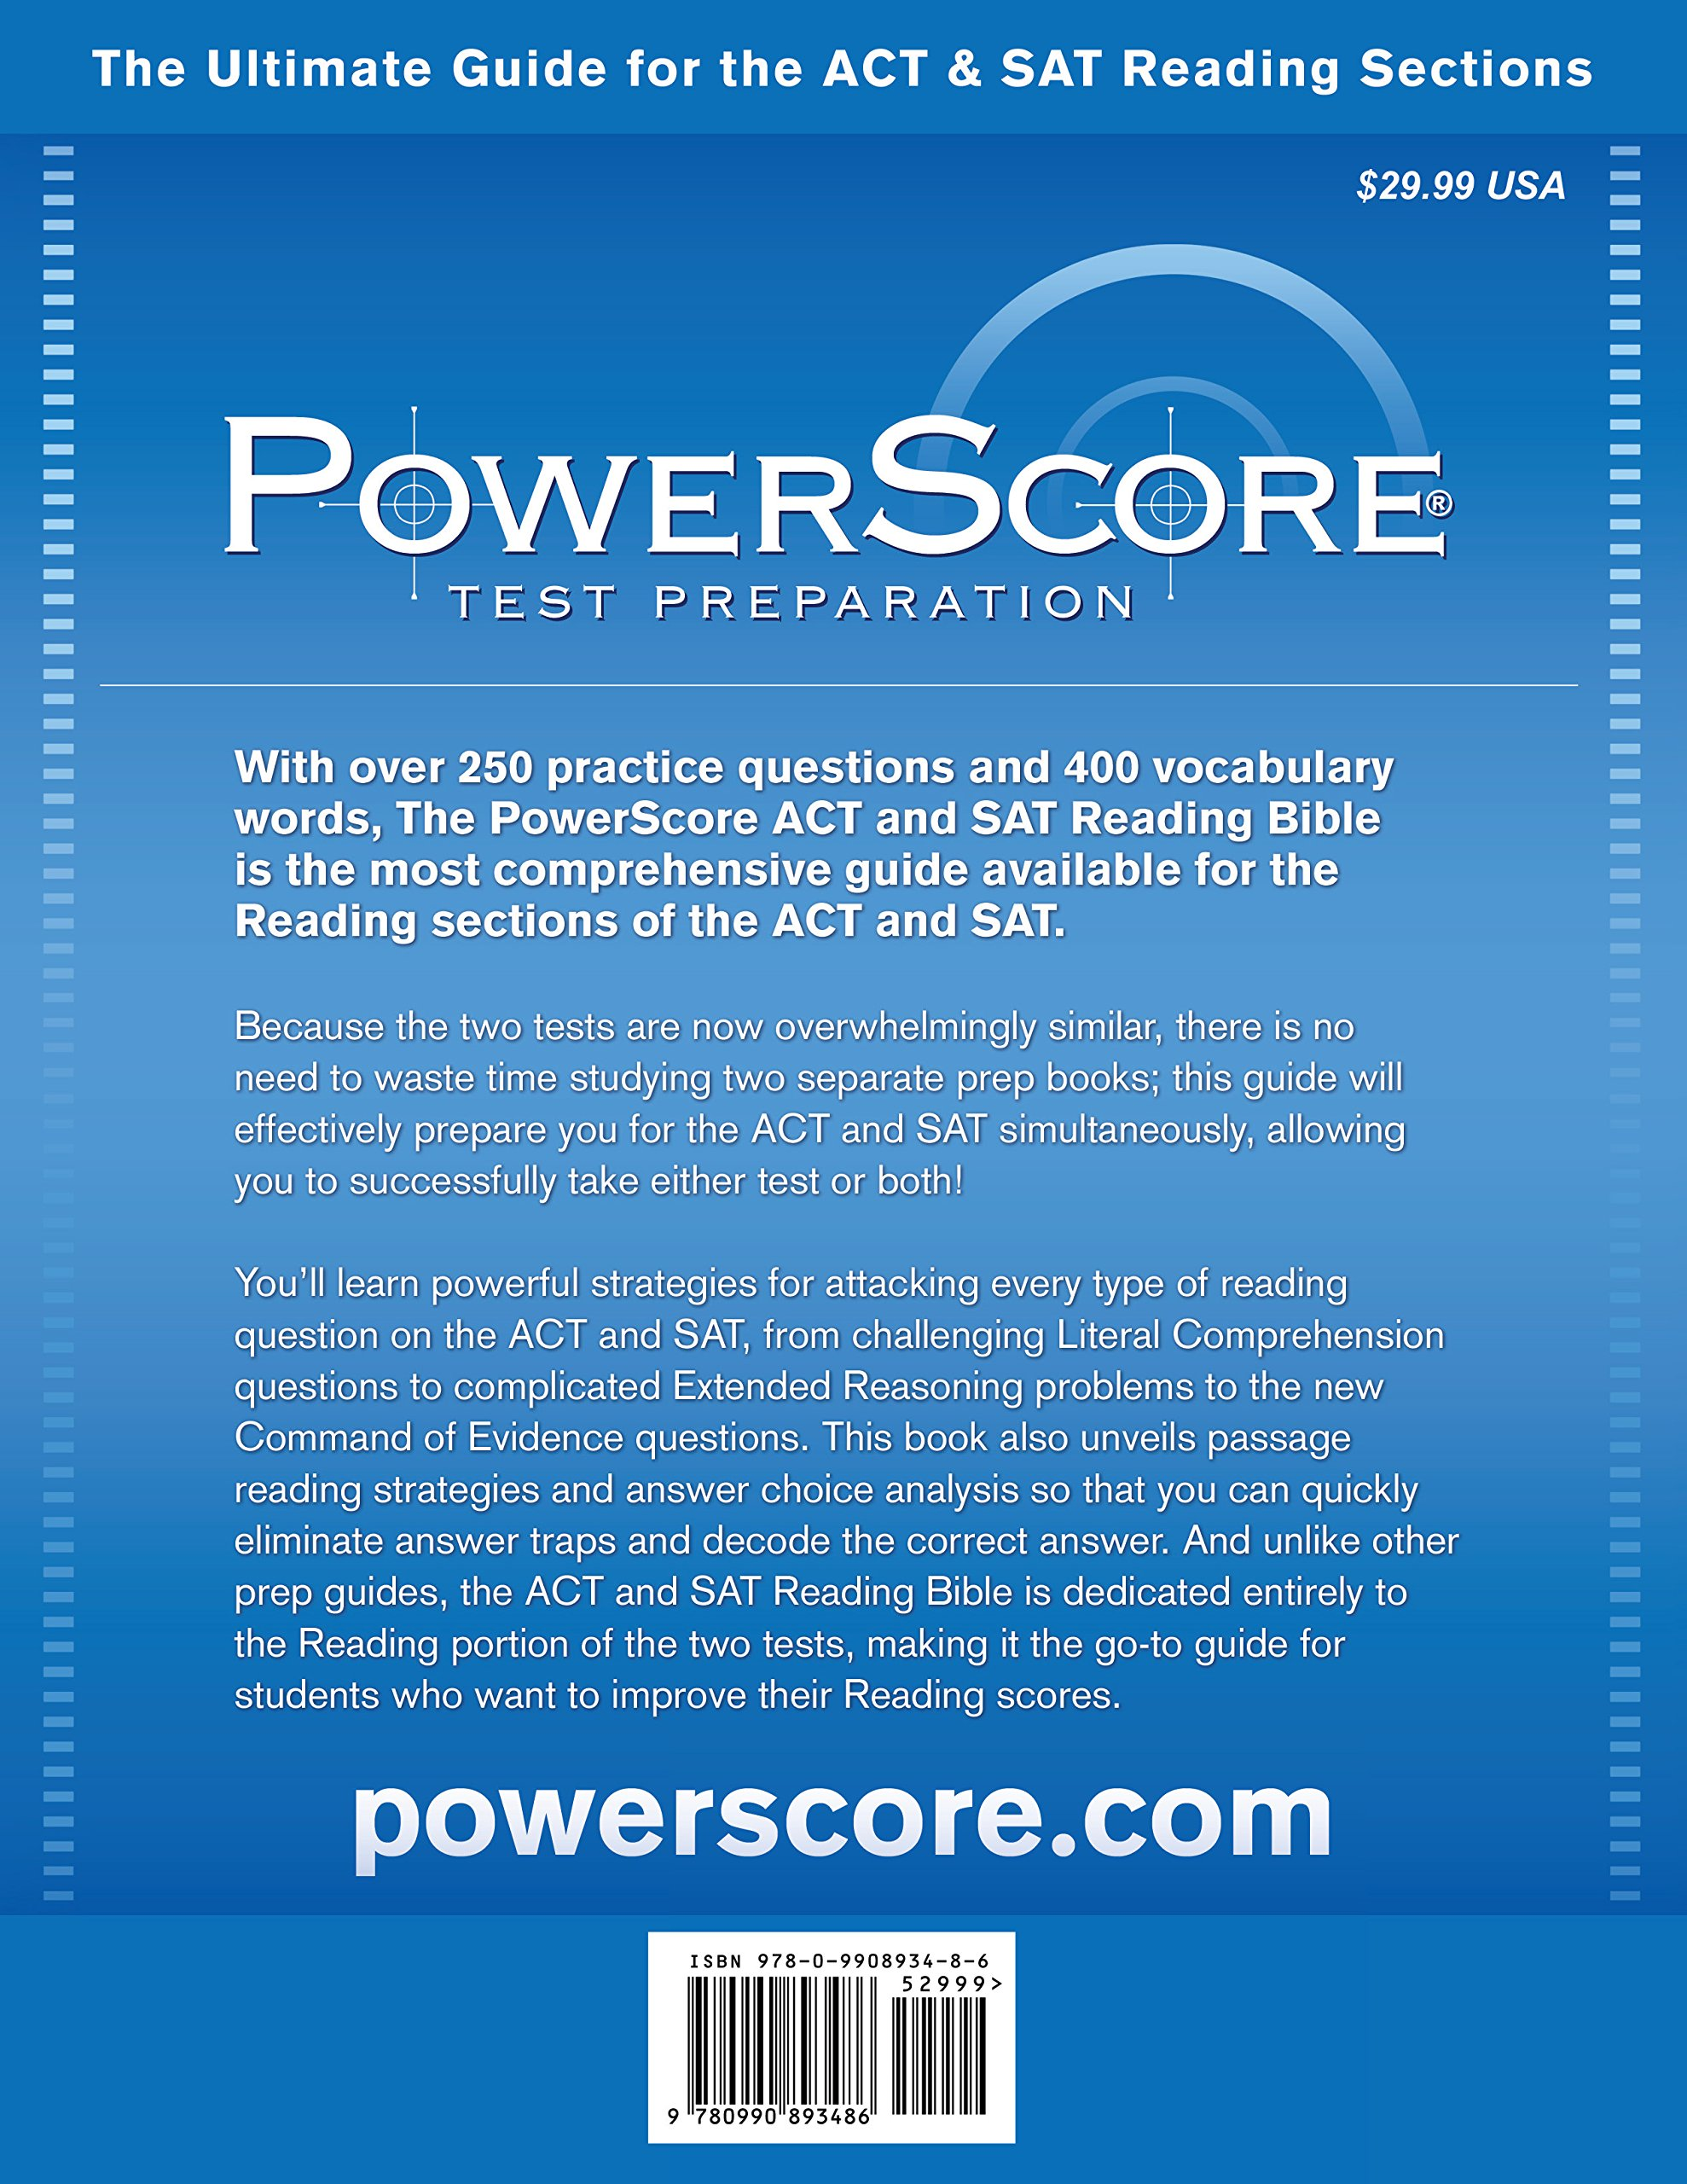 Buy The Powerscore Act & Sat Reading Bible: The Only Book You Need for the  Act & Sat Reading Sections! Book Online at Low Prices in India | The  Powerscore ...